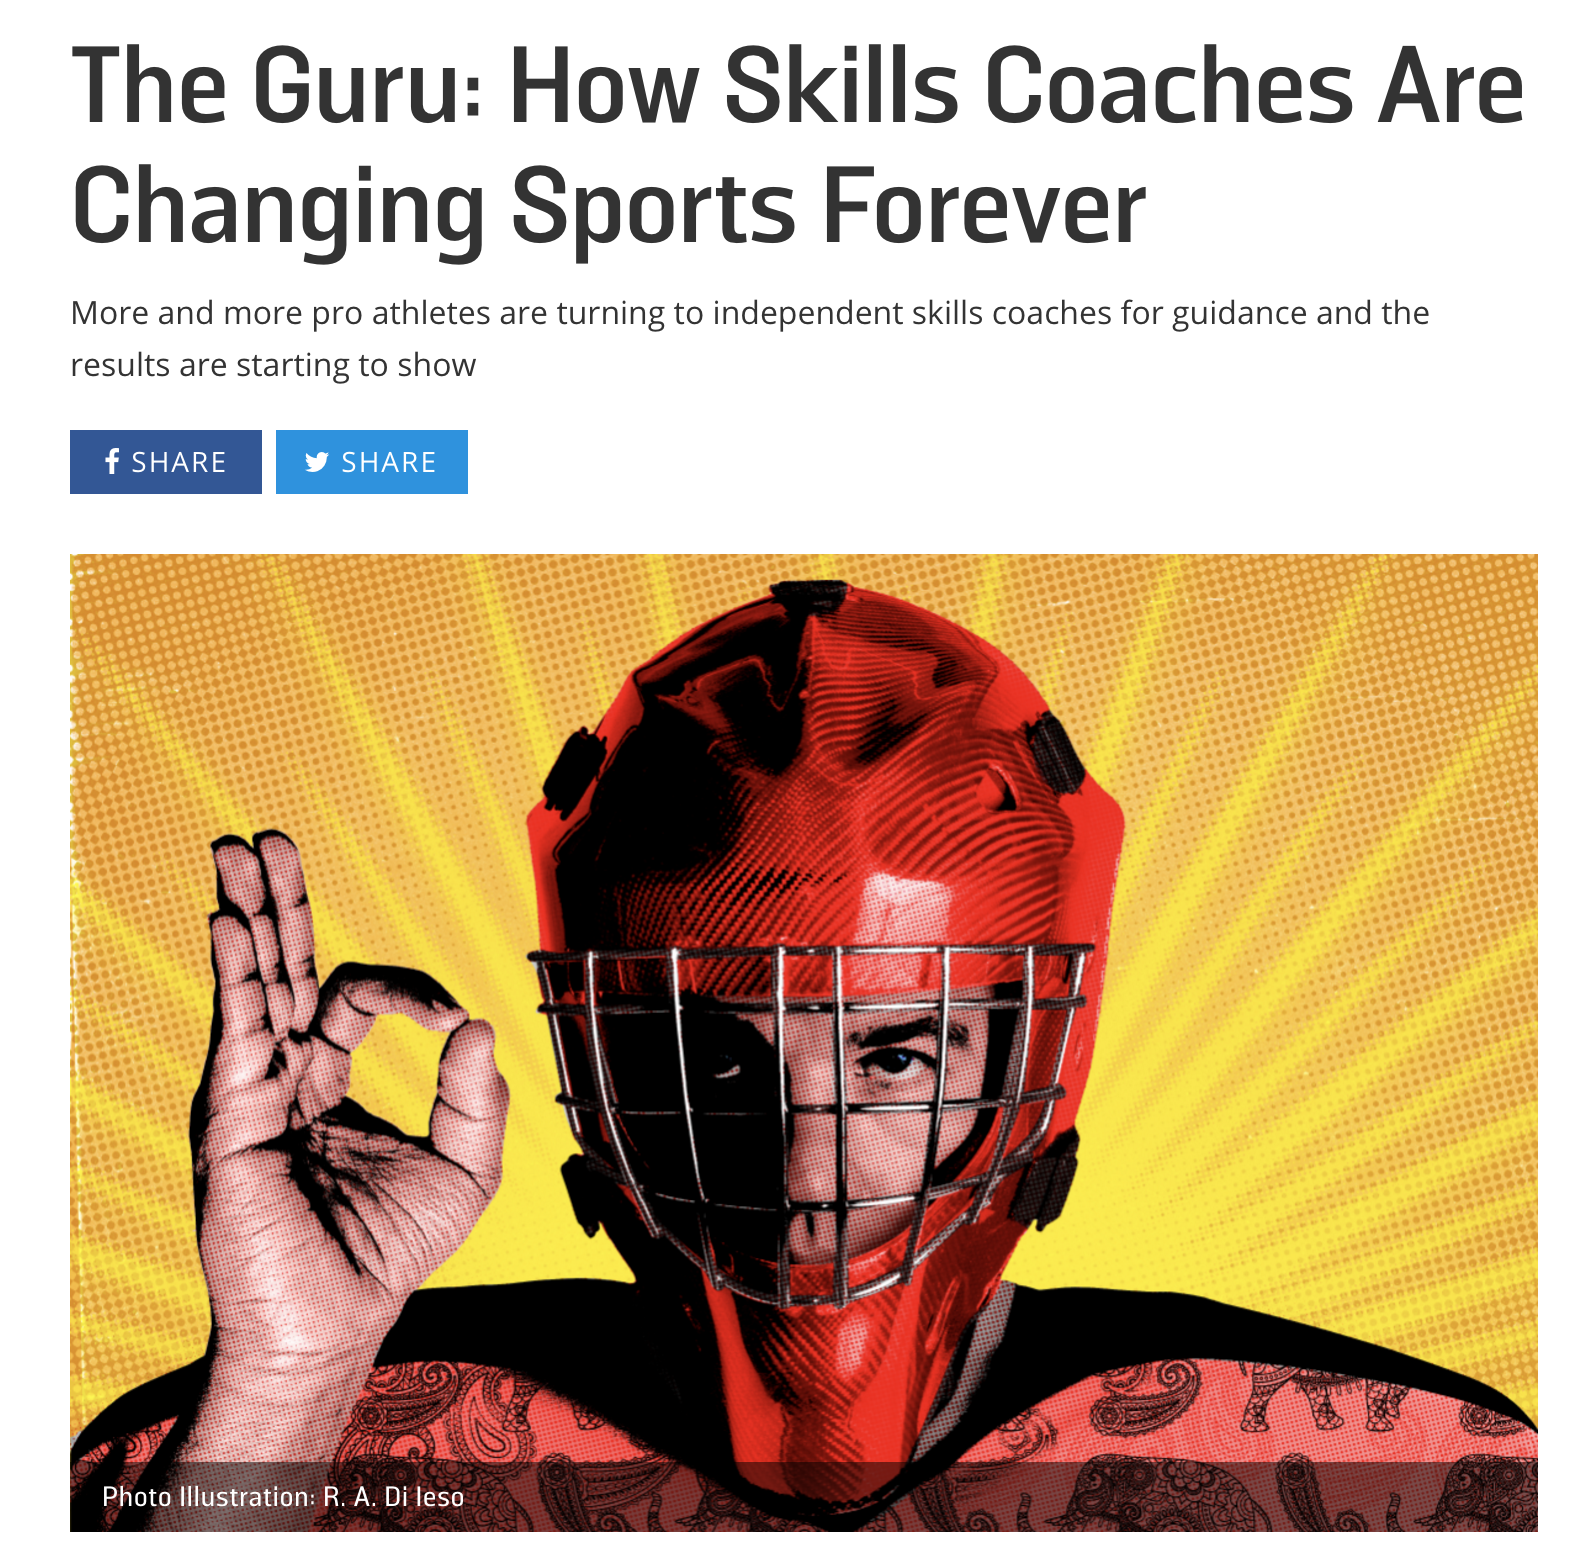 The Guru: How Skills Coaches Are Changing Sports Forever